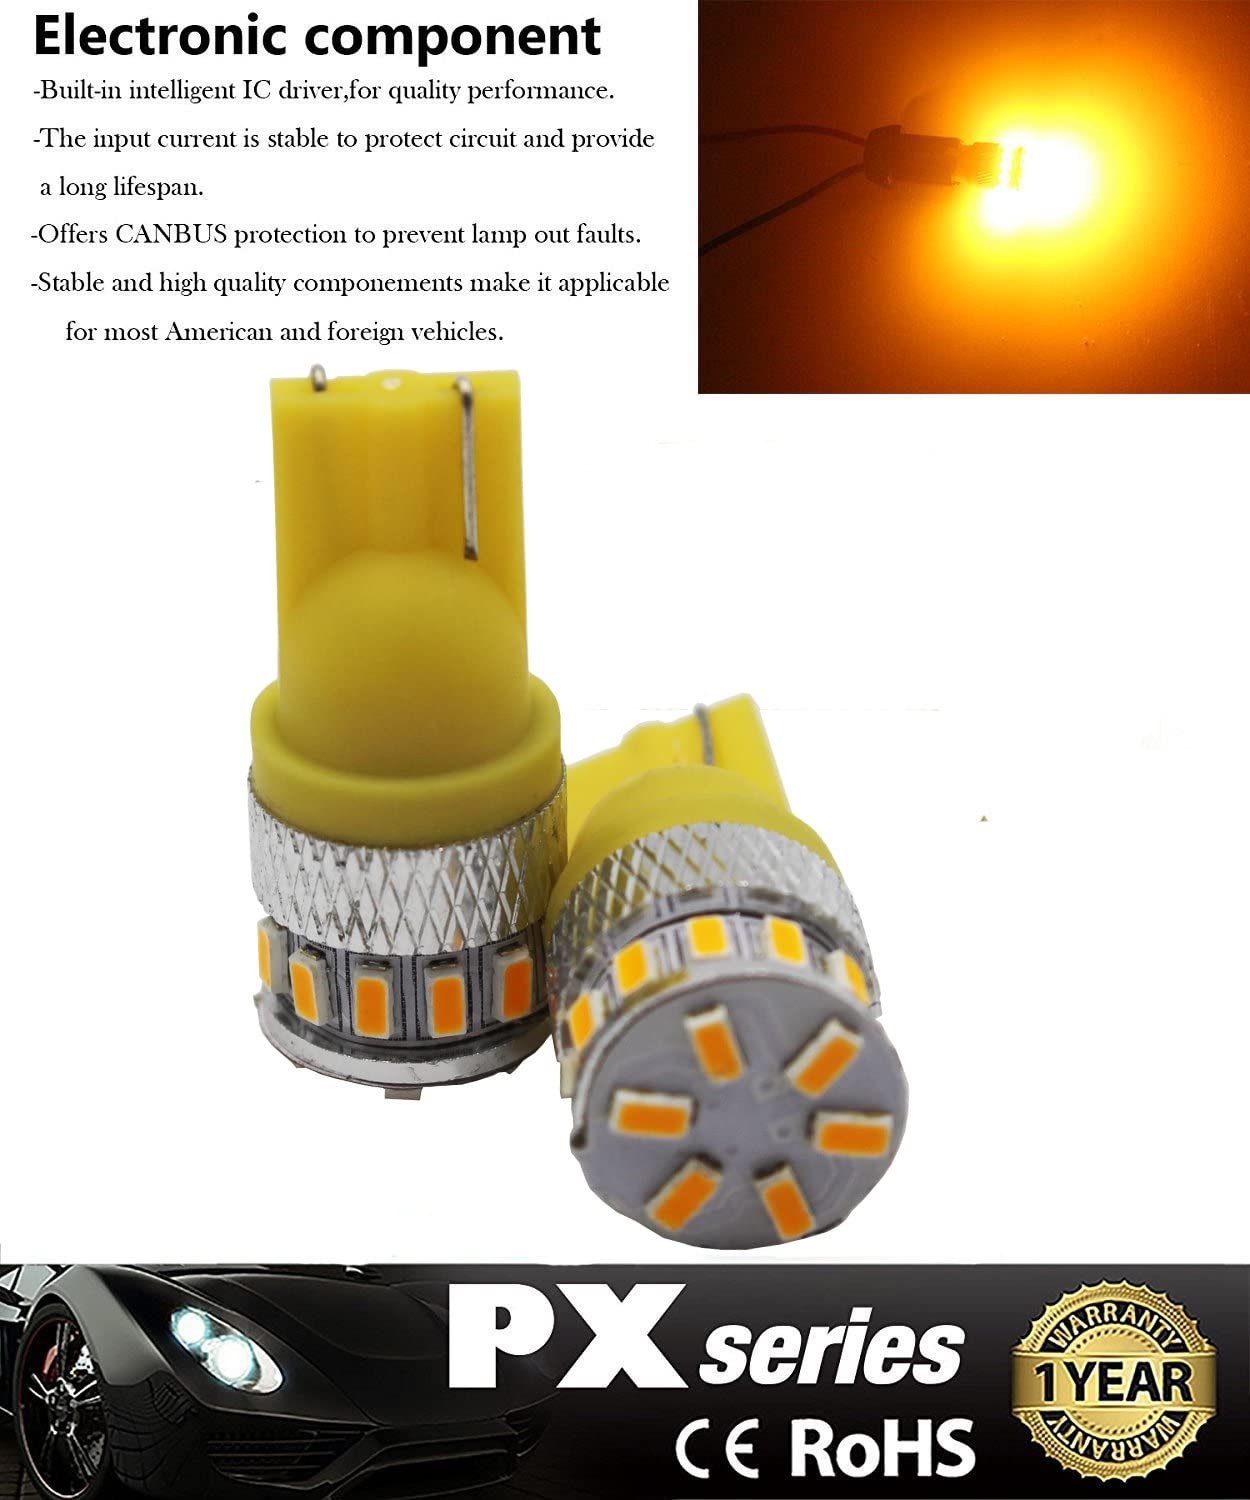 4-Pack T10 194 168 2825 501 Extremely Bright 240Lums Amber//Yellow 5th Generation Non-Polarity LED Light 12V-24V 18SMD 3014 Car Replacement For Map Dome License Plate Dashboard Side Marker Light